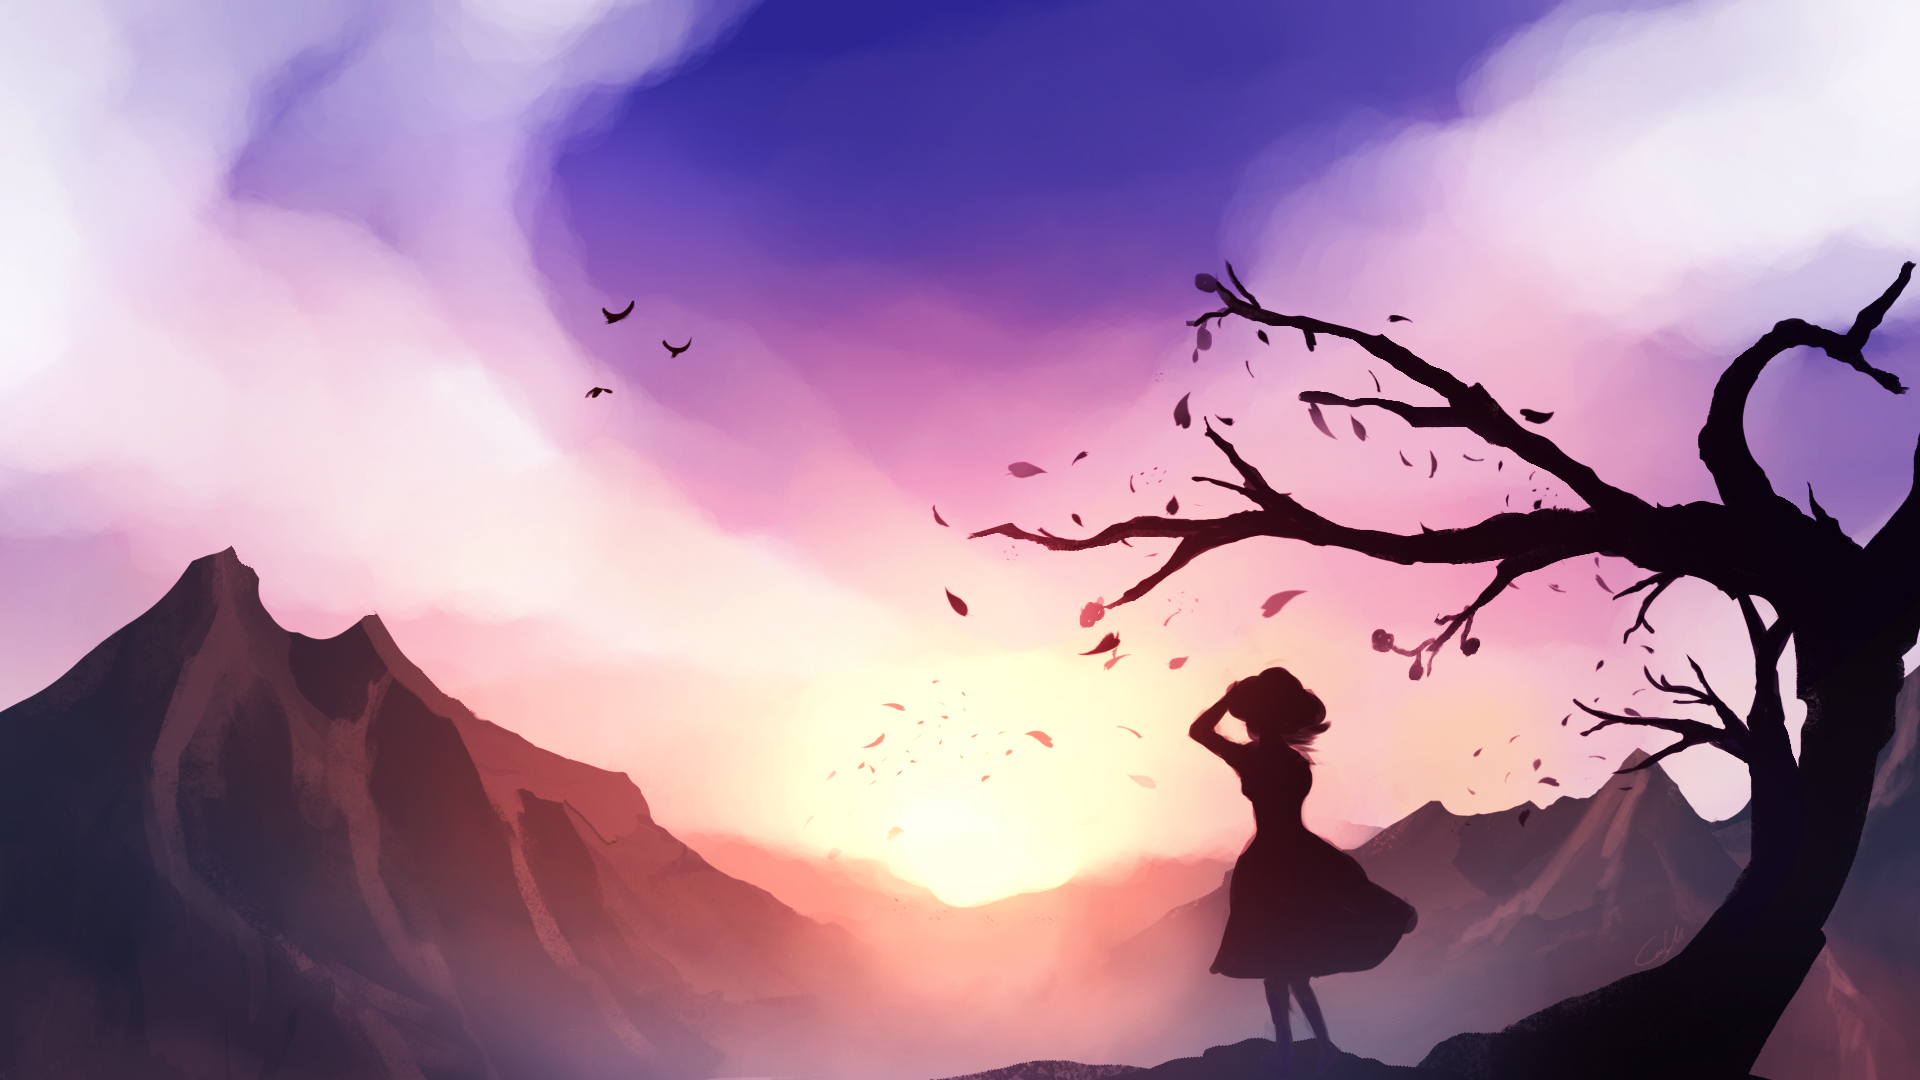 As the Wind Flows